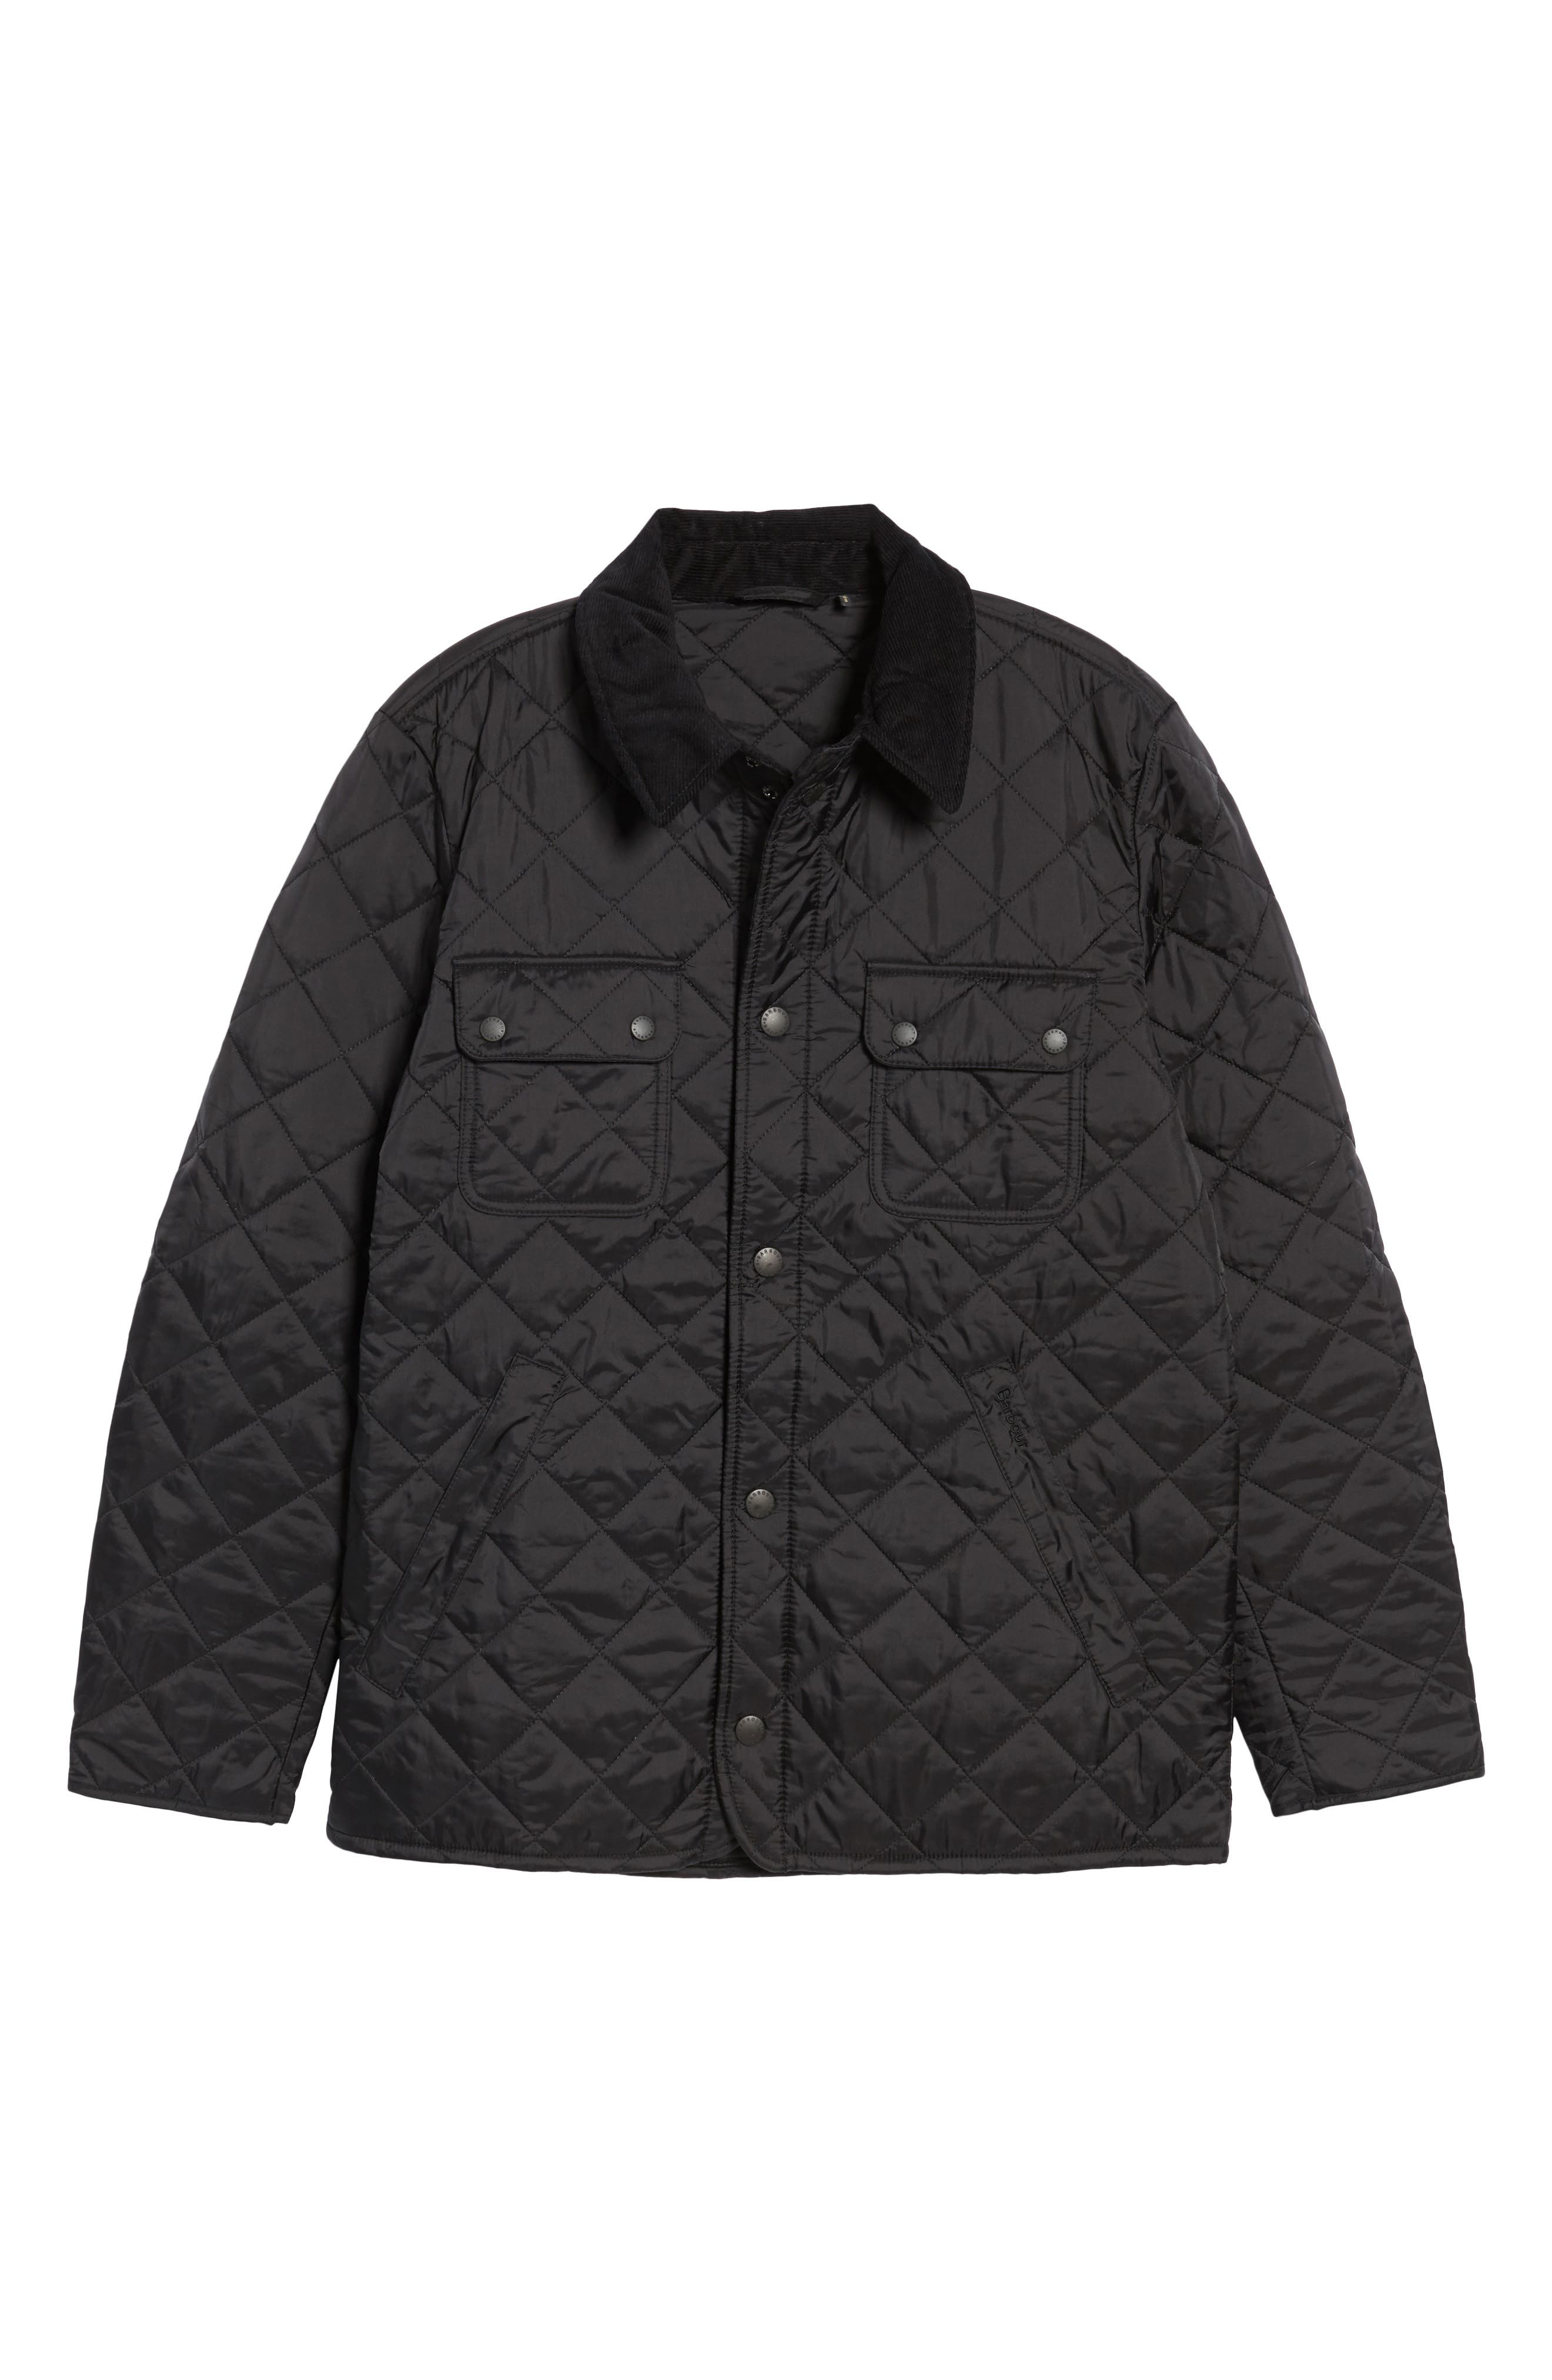 'Tinford' Regular Fit Quilted Jacket,                             Alternate thumbnail 2, color,                             001